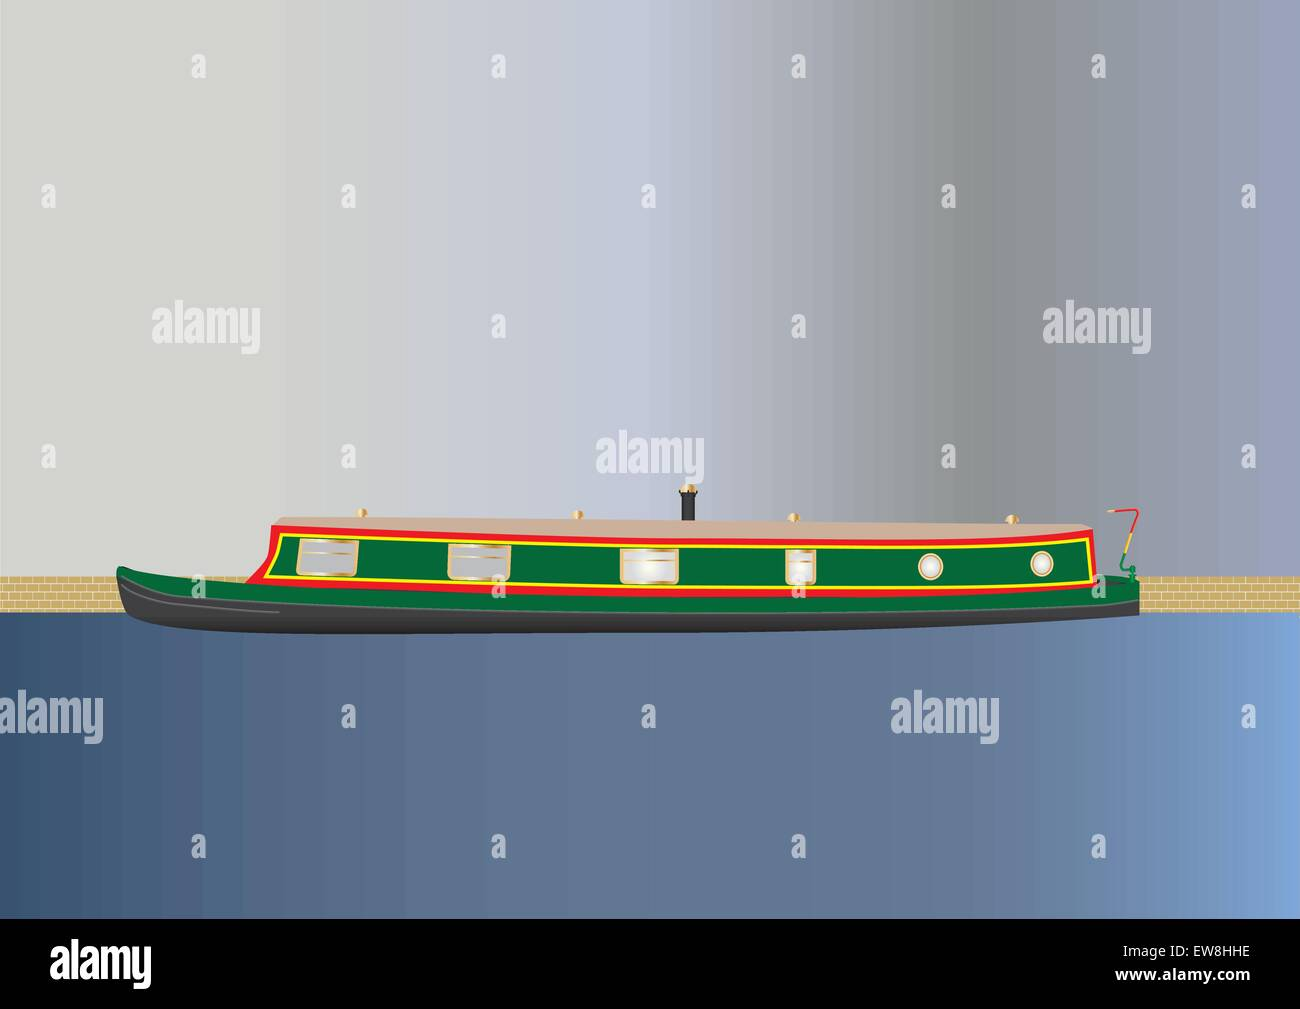 A Green and Red Narrowboat or barge floating on a canal with a sky background - Stock Vector